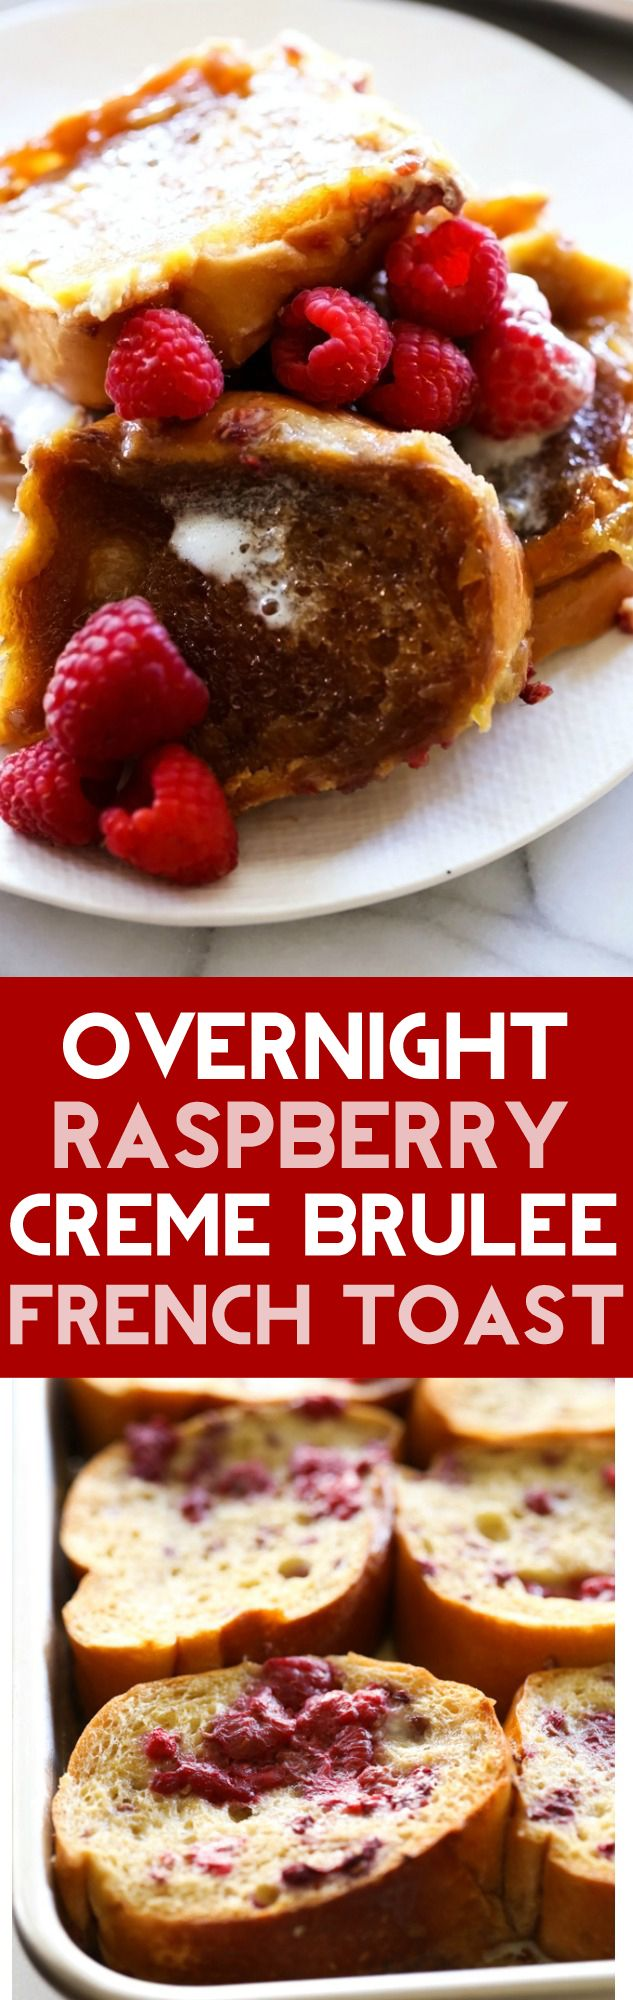 Overnight Raspberry Creme Brûlée French Toast is super easy! All the prep work is done the night before and it is coated in a sweet raspberry egg mixture and has a delicious crispy sugar topping that knocks it out of the park! This is a MUST TRY!